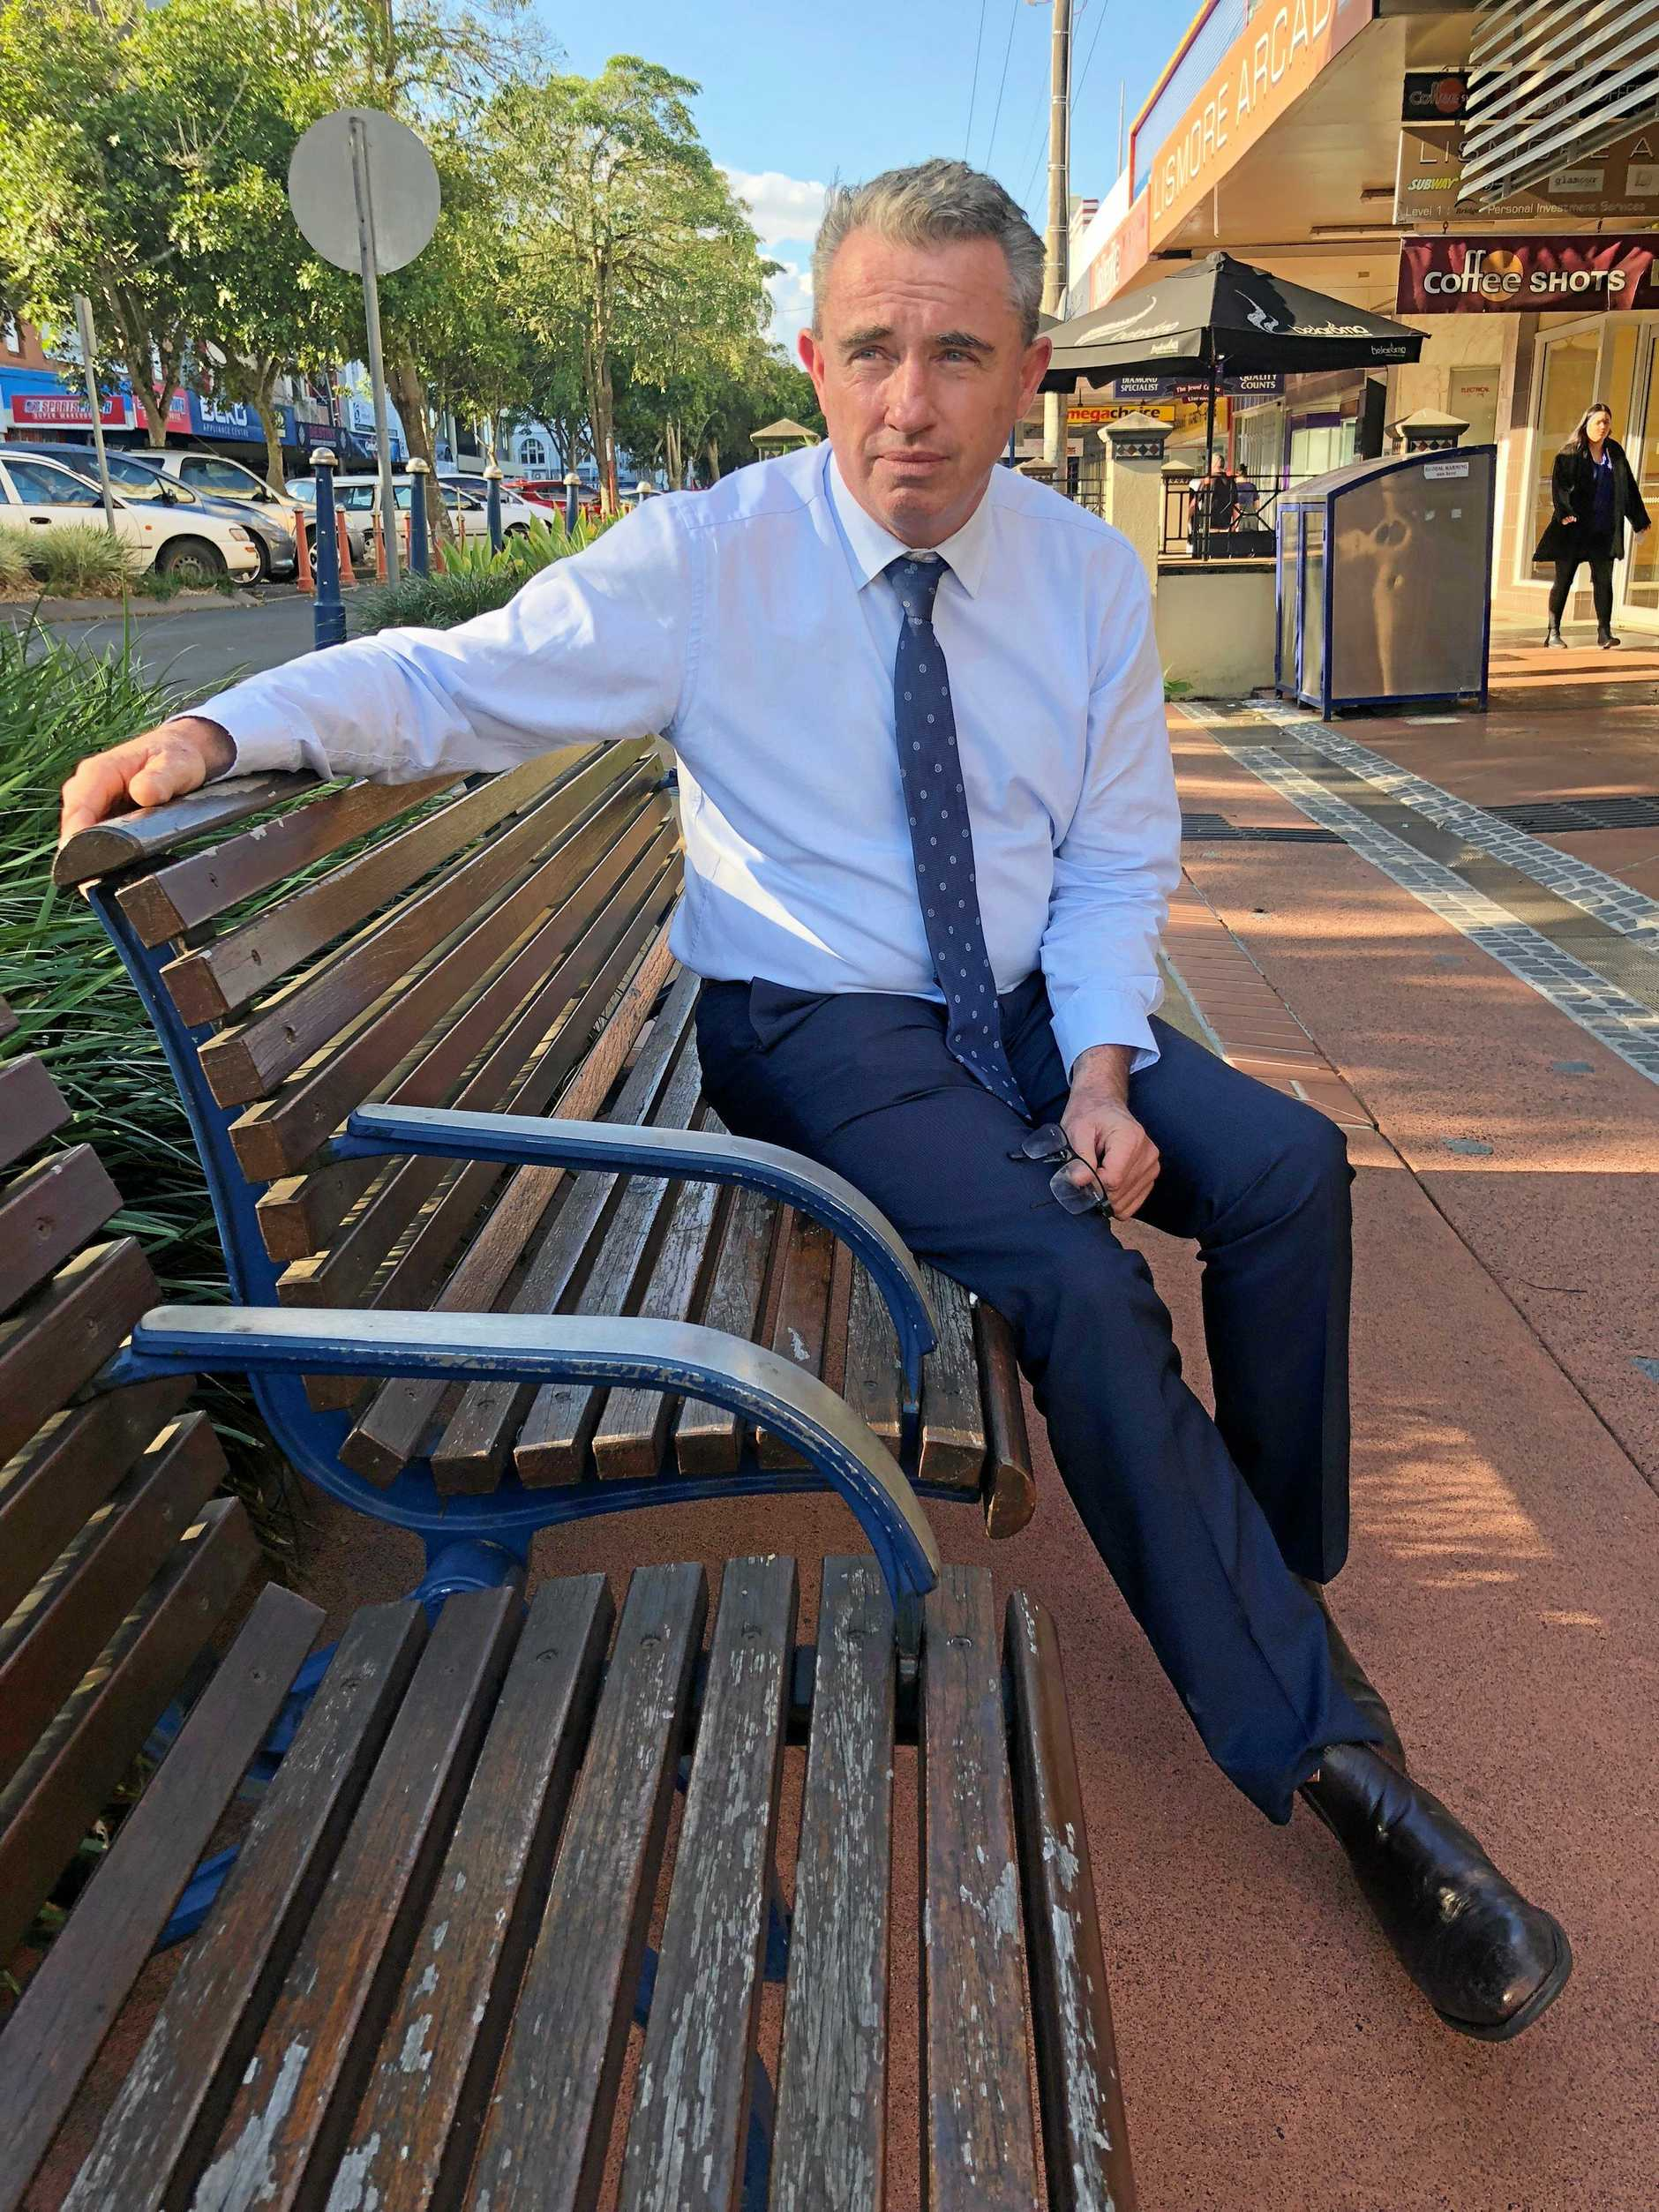 Federal member for Page, Kevin Hogan, happy to be back in his electorate outside his office in Lismore after last week's Liberal Party leadership spill in Canberra.